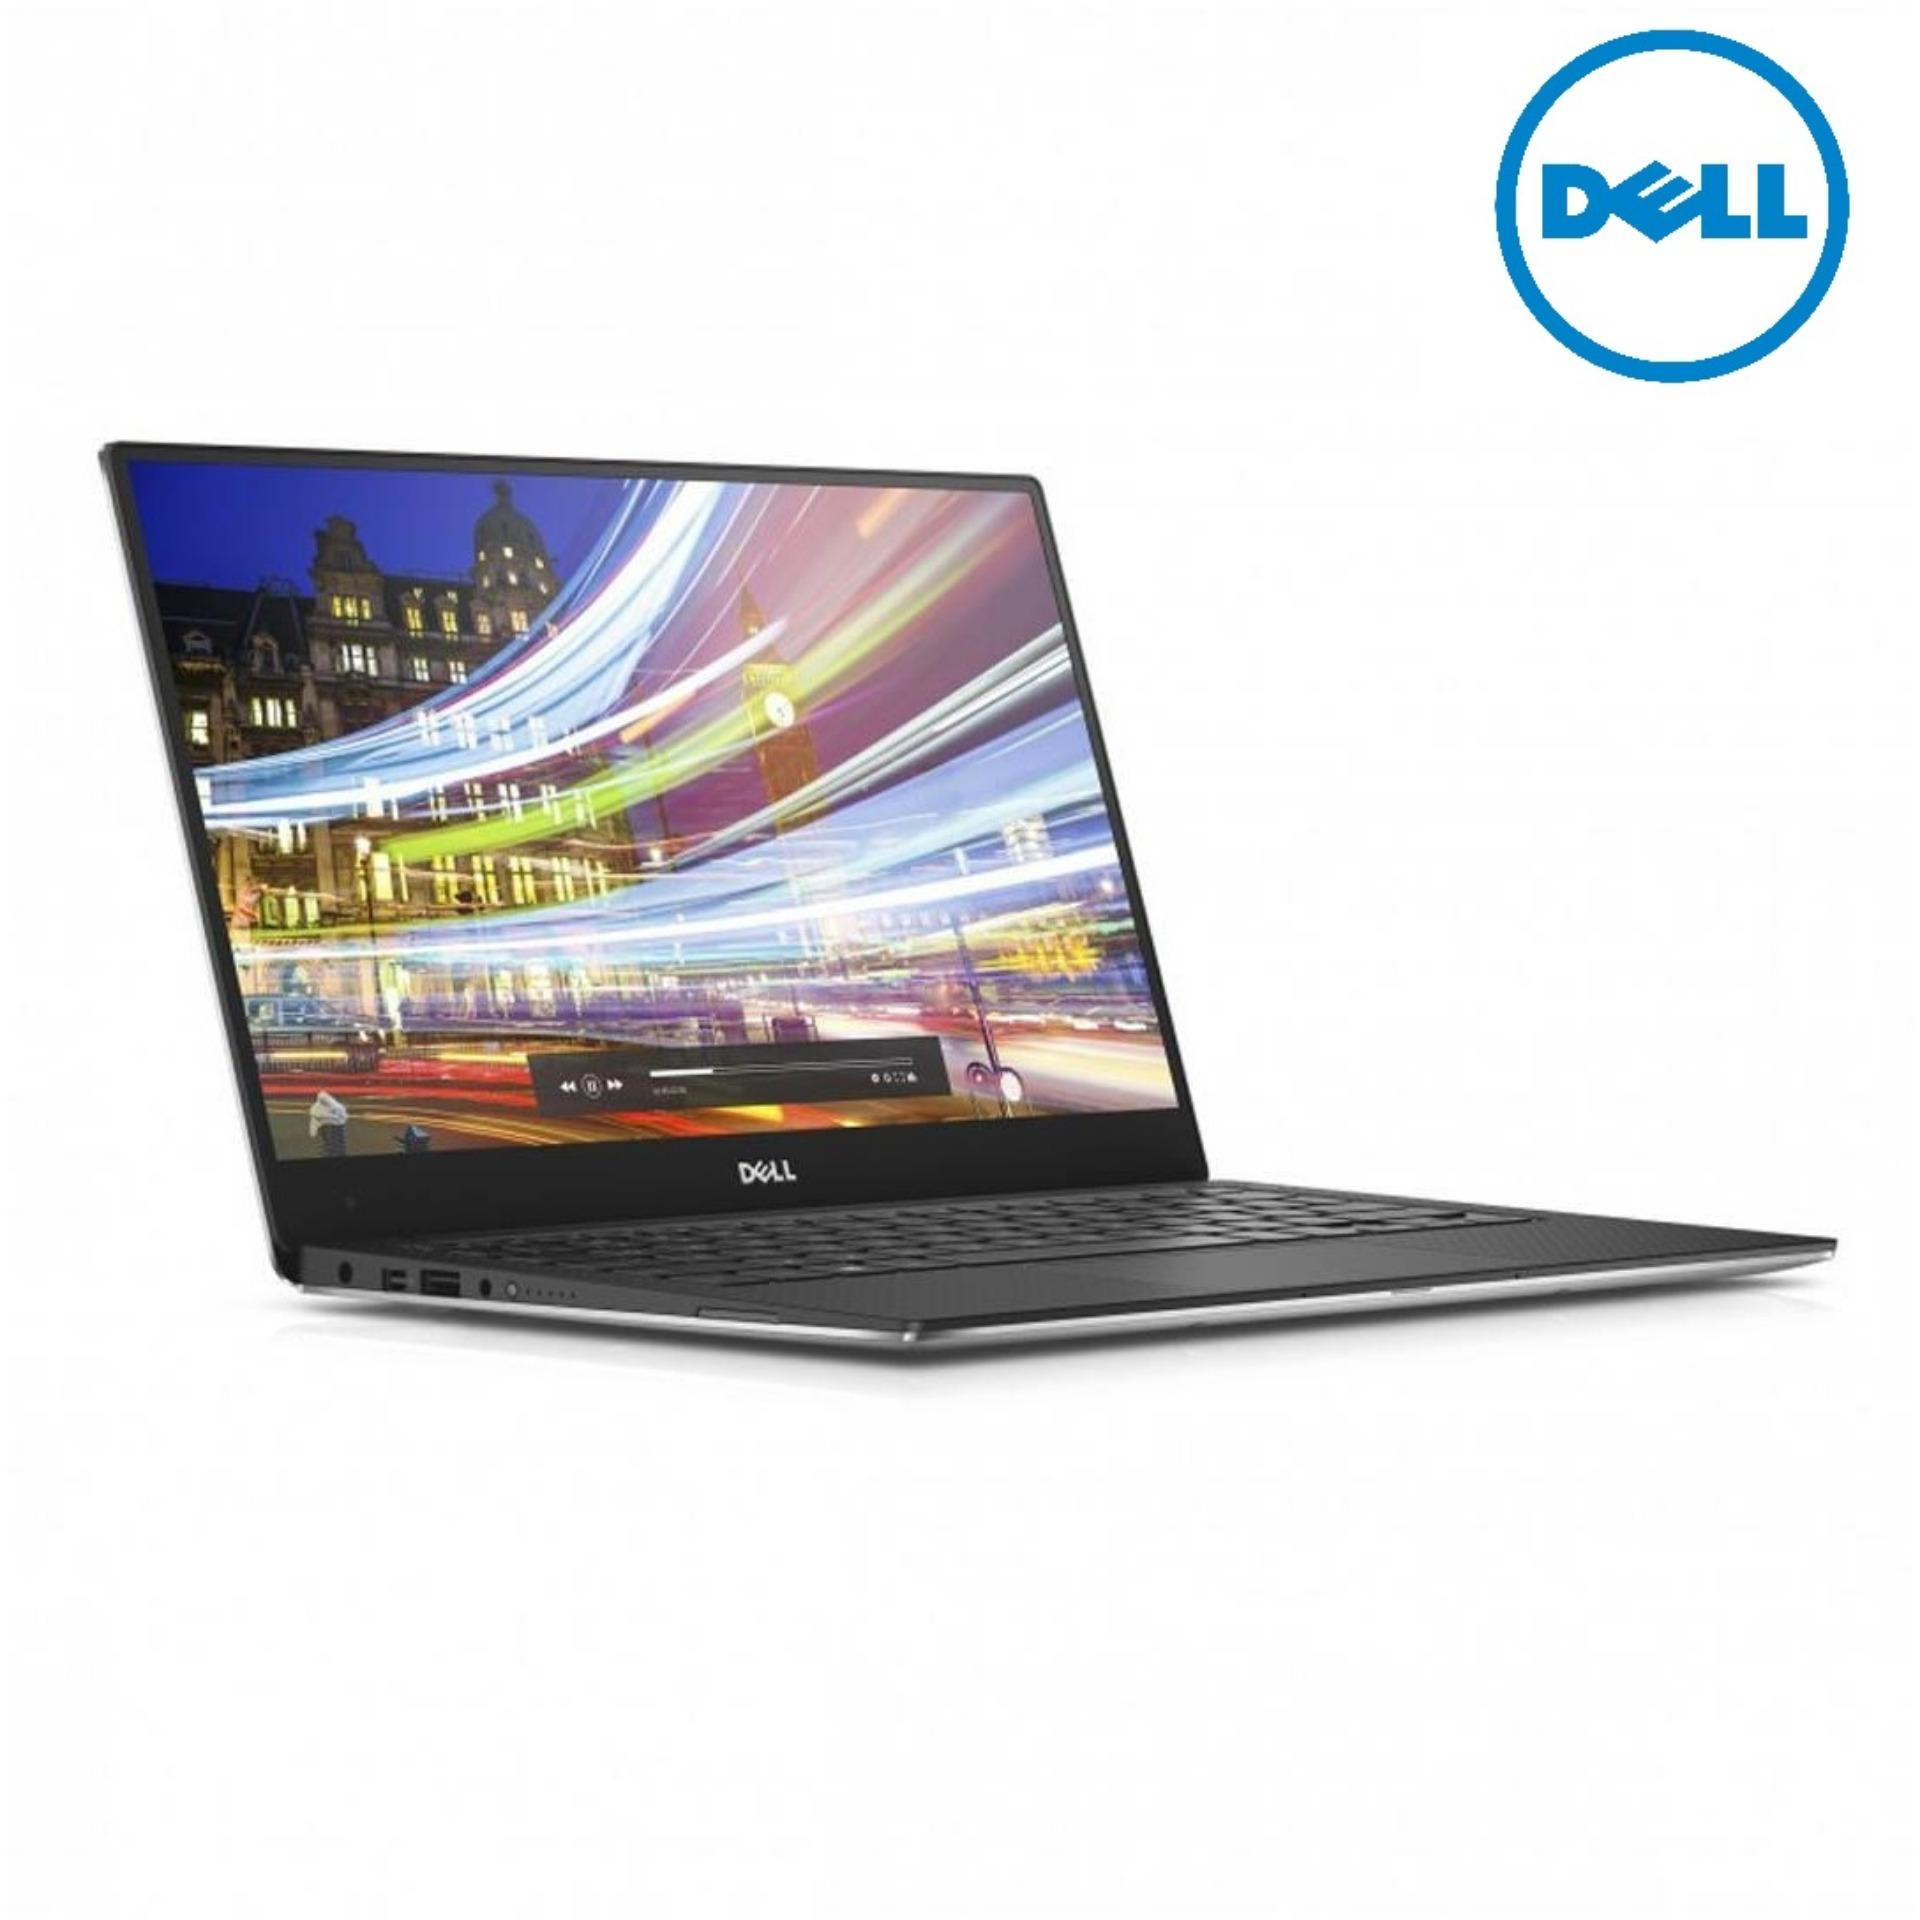 New Dell XPS13 (9370) 8th Gen i5-8250U, 256SSD, WIN10(Silver)